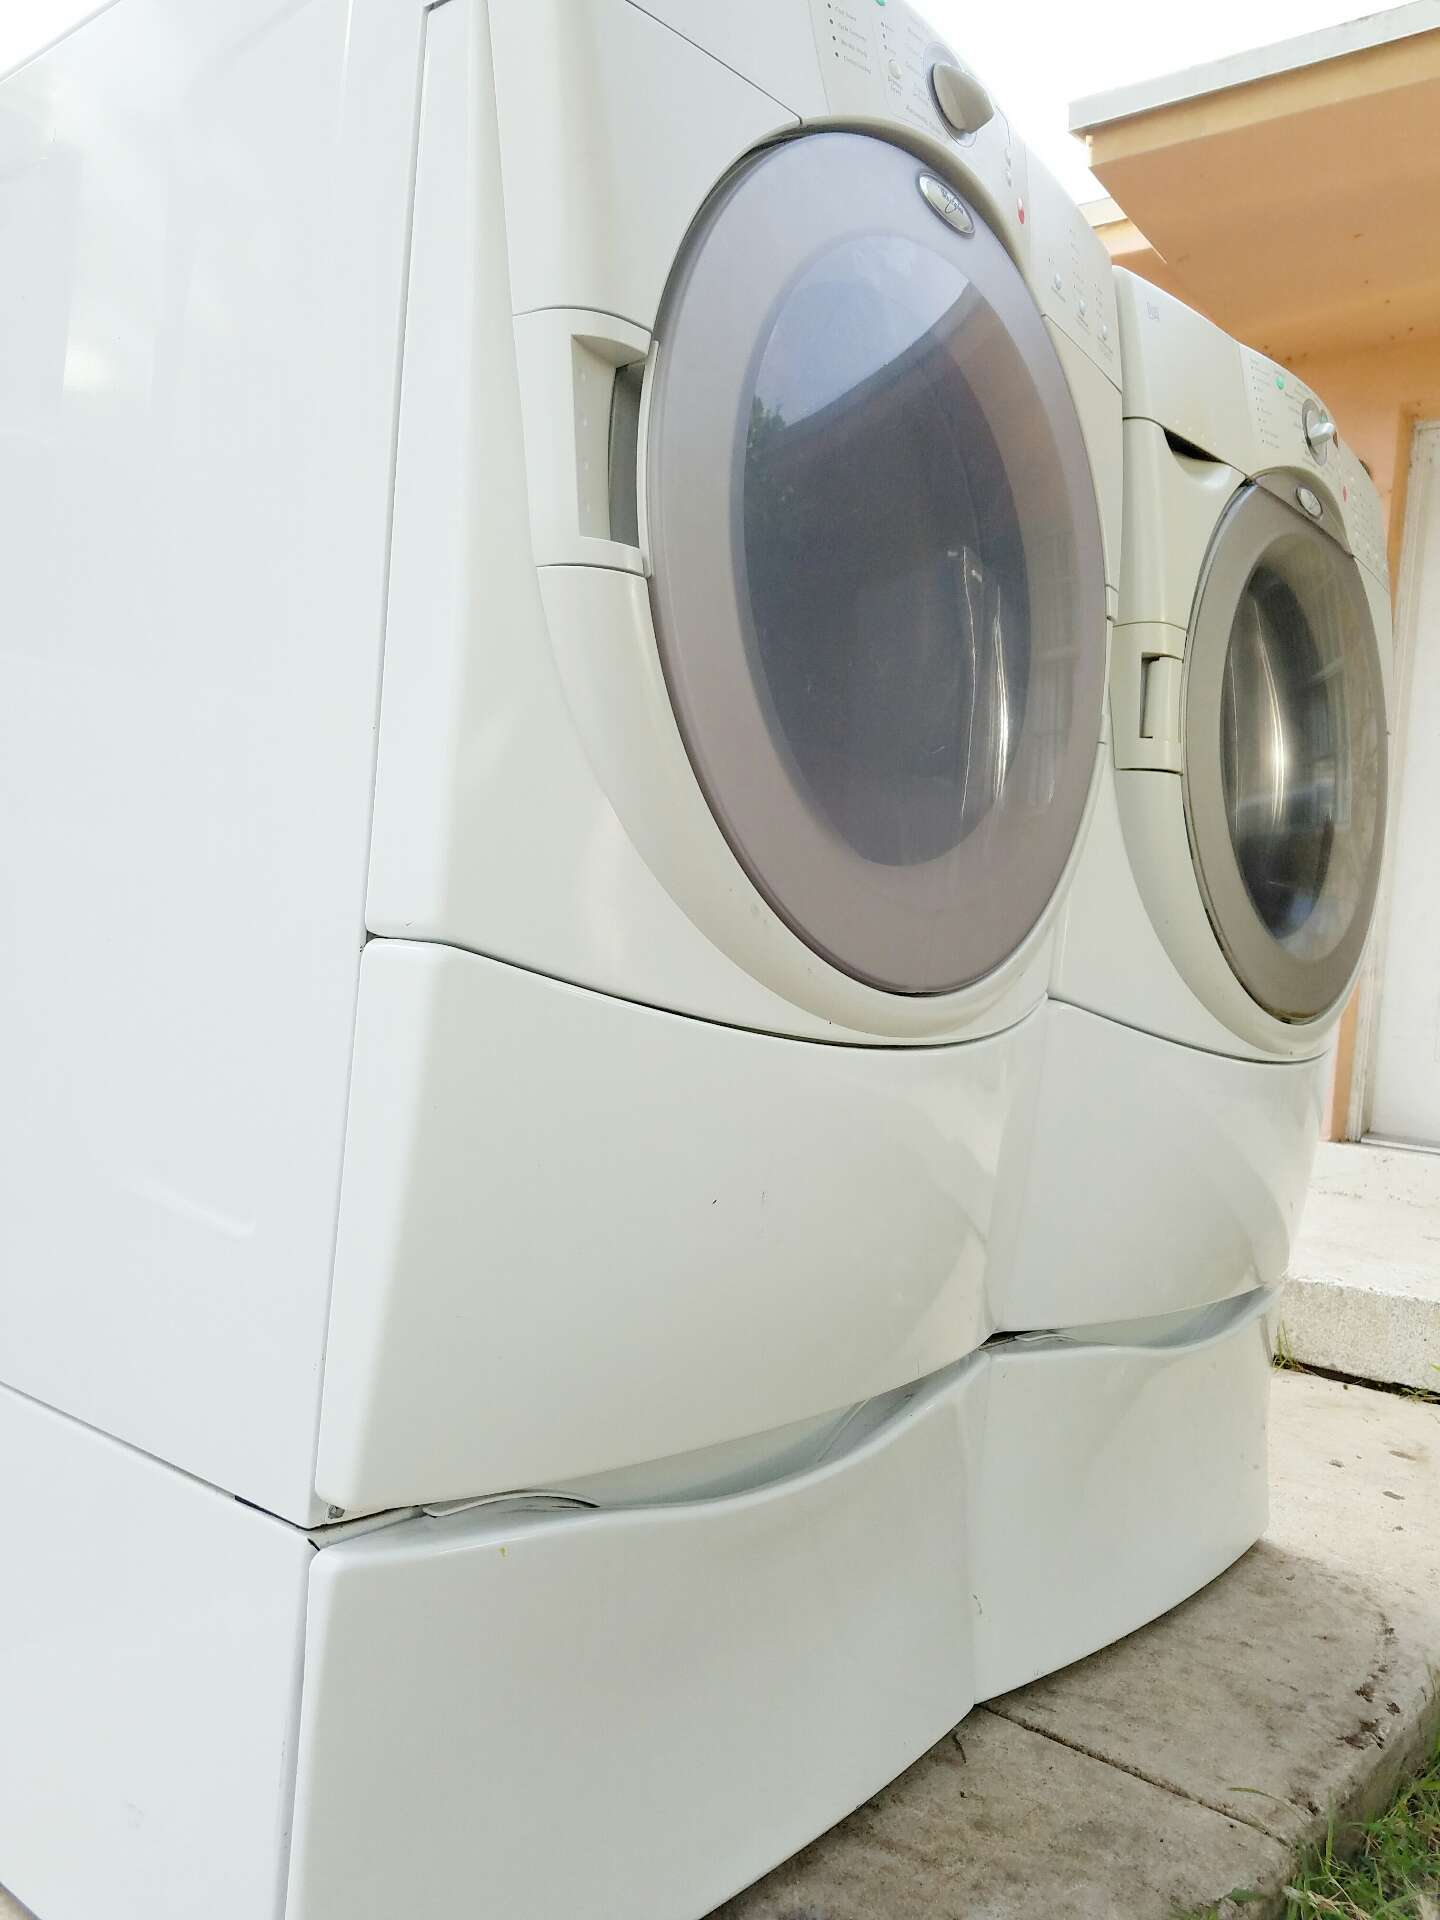 Whirlpool Duet Front Load Washer And Dryer With Pedestals